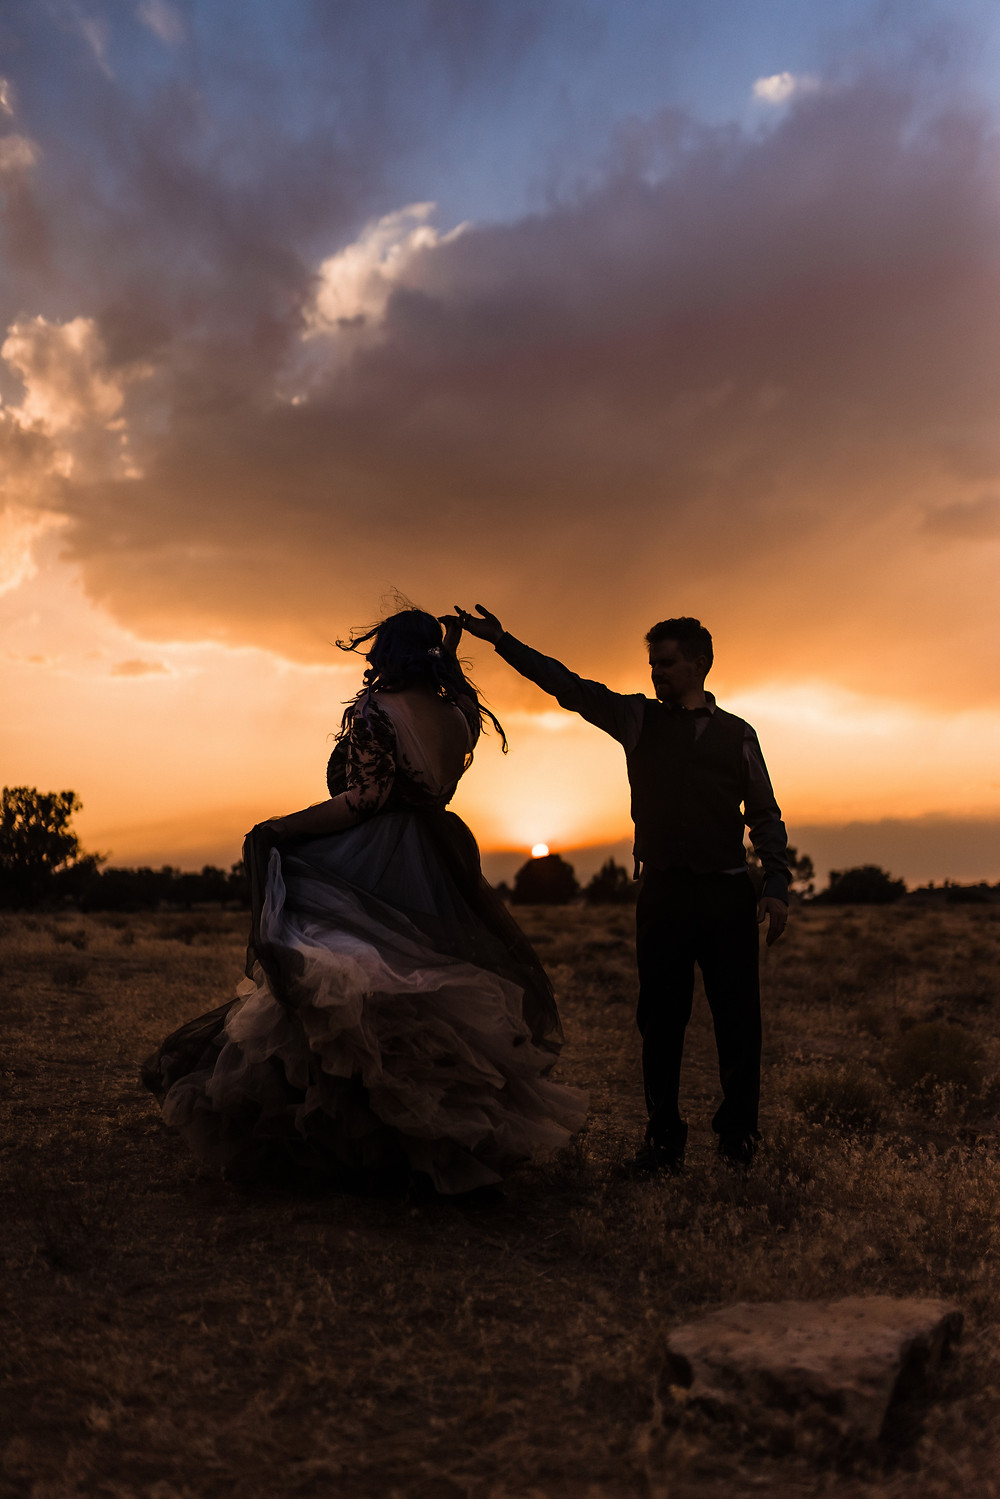 Newly wed couple dancing at Sunset after golden hour wedding photos in Southern Utah. #sunsetweddingphotos #weddingphotography #weddingdance #darksunset #couplephotos #justmarried #weddingplanner #eventplanner #utahweddingplanner #utahwedding